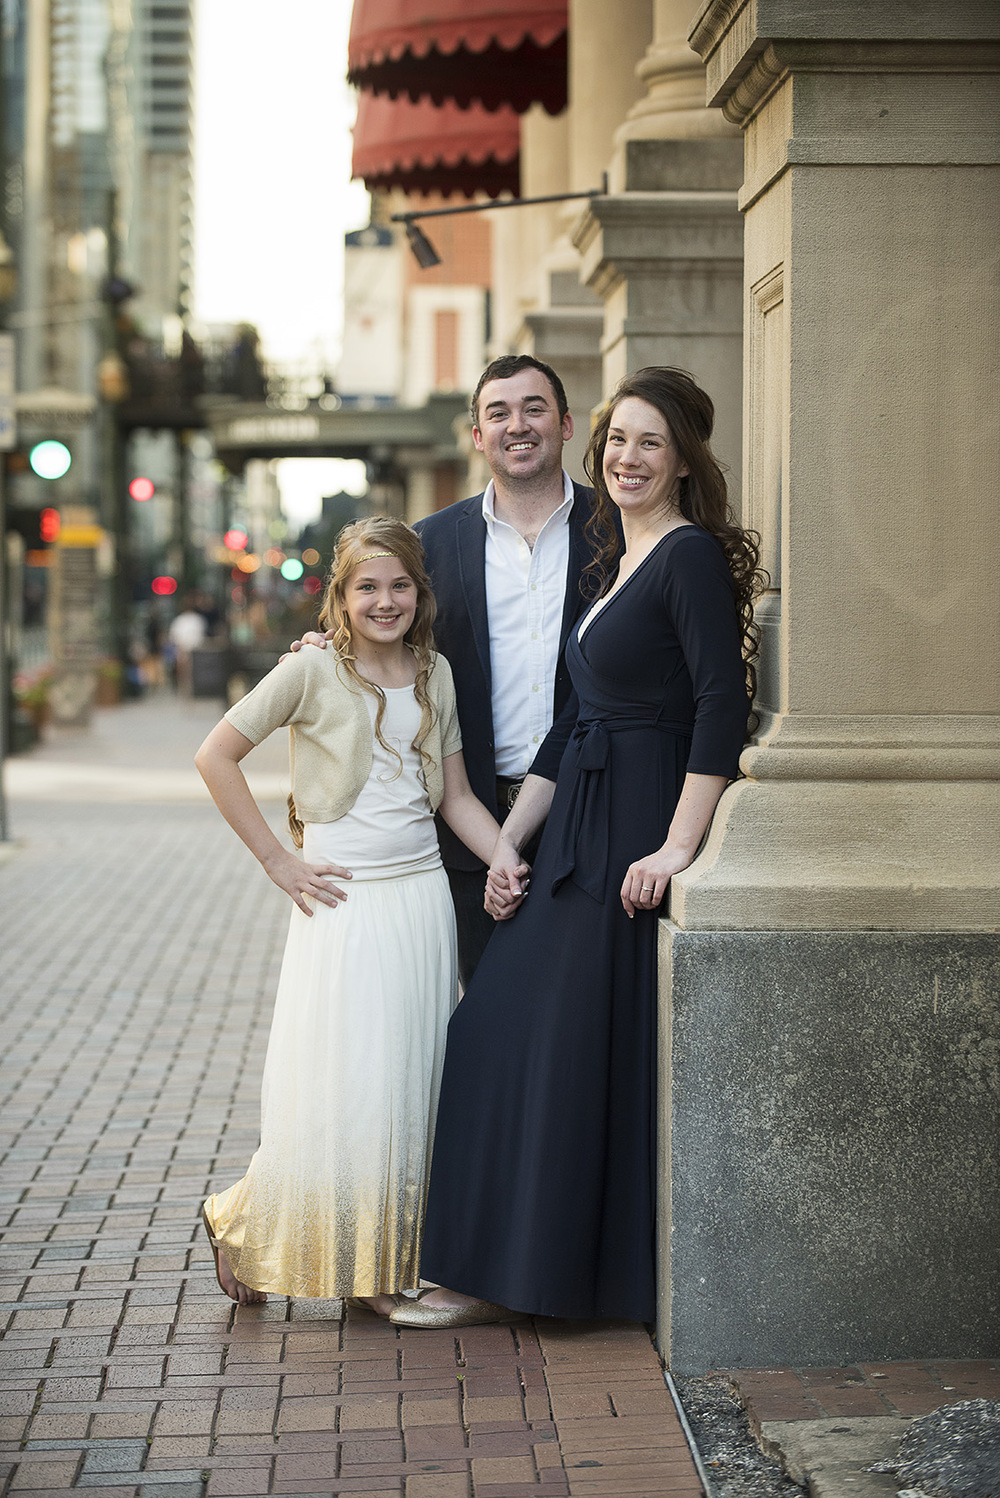 Houston main street modern creative classy engagement photographer Kate_Lawrence_083sm.jpg